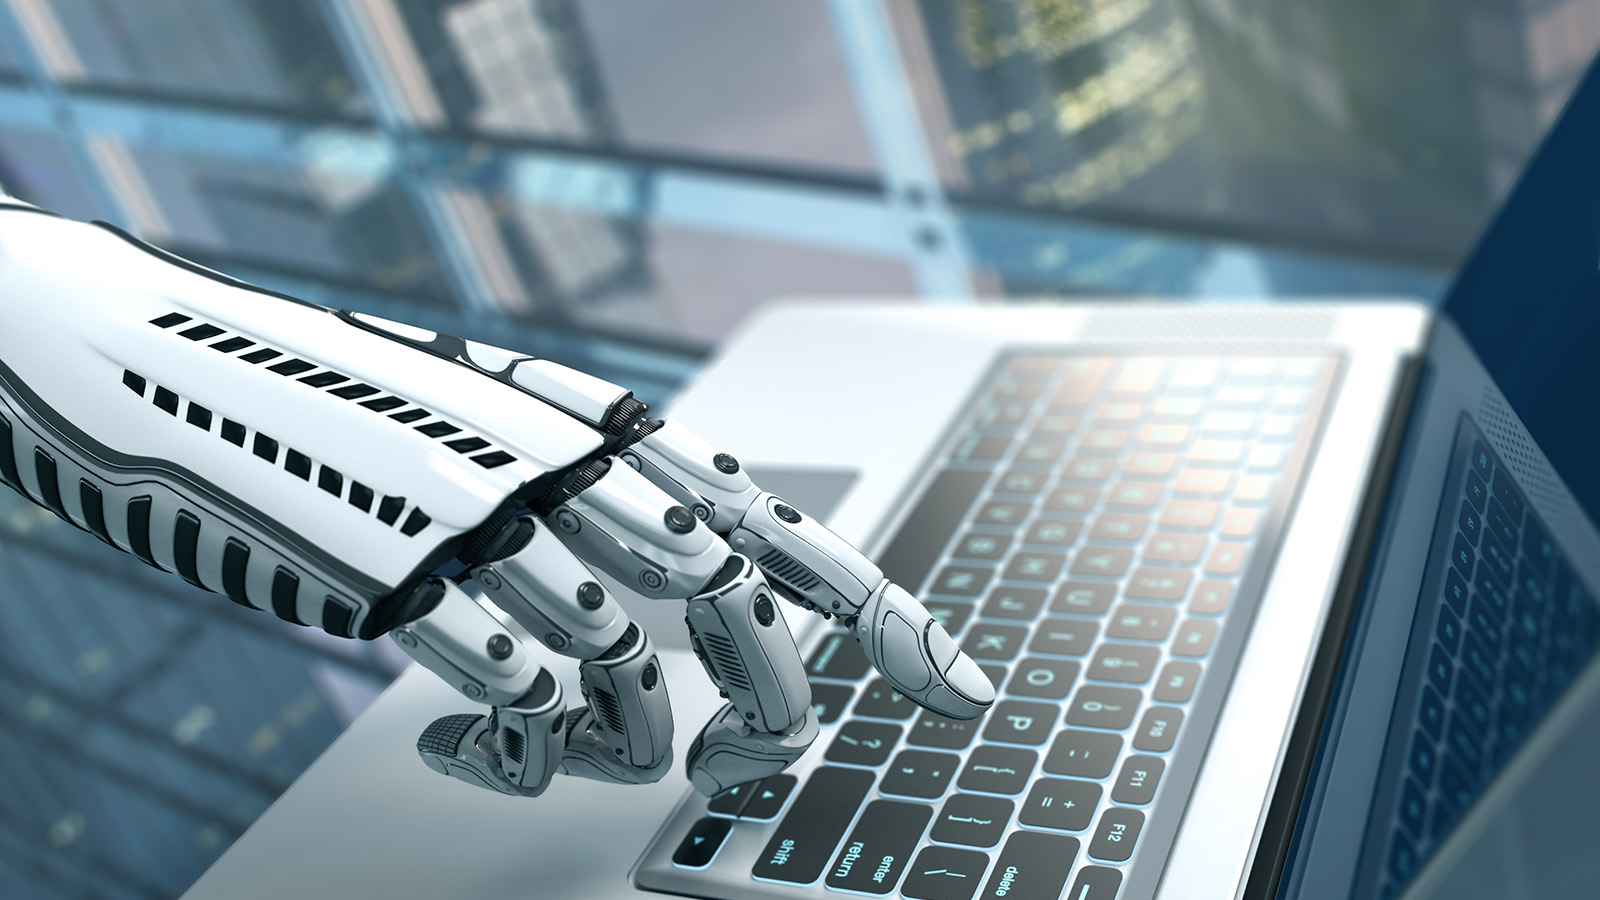 Amitech and UiPath Partner to Accelerate Robotic Process